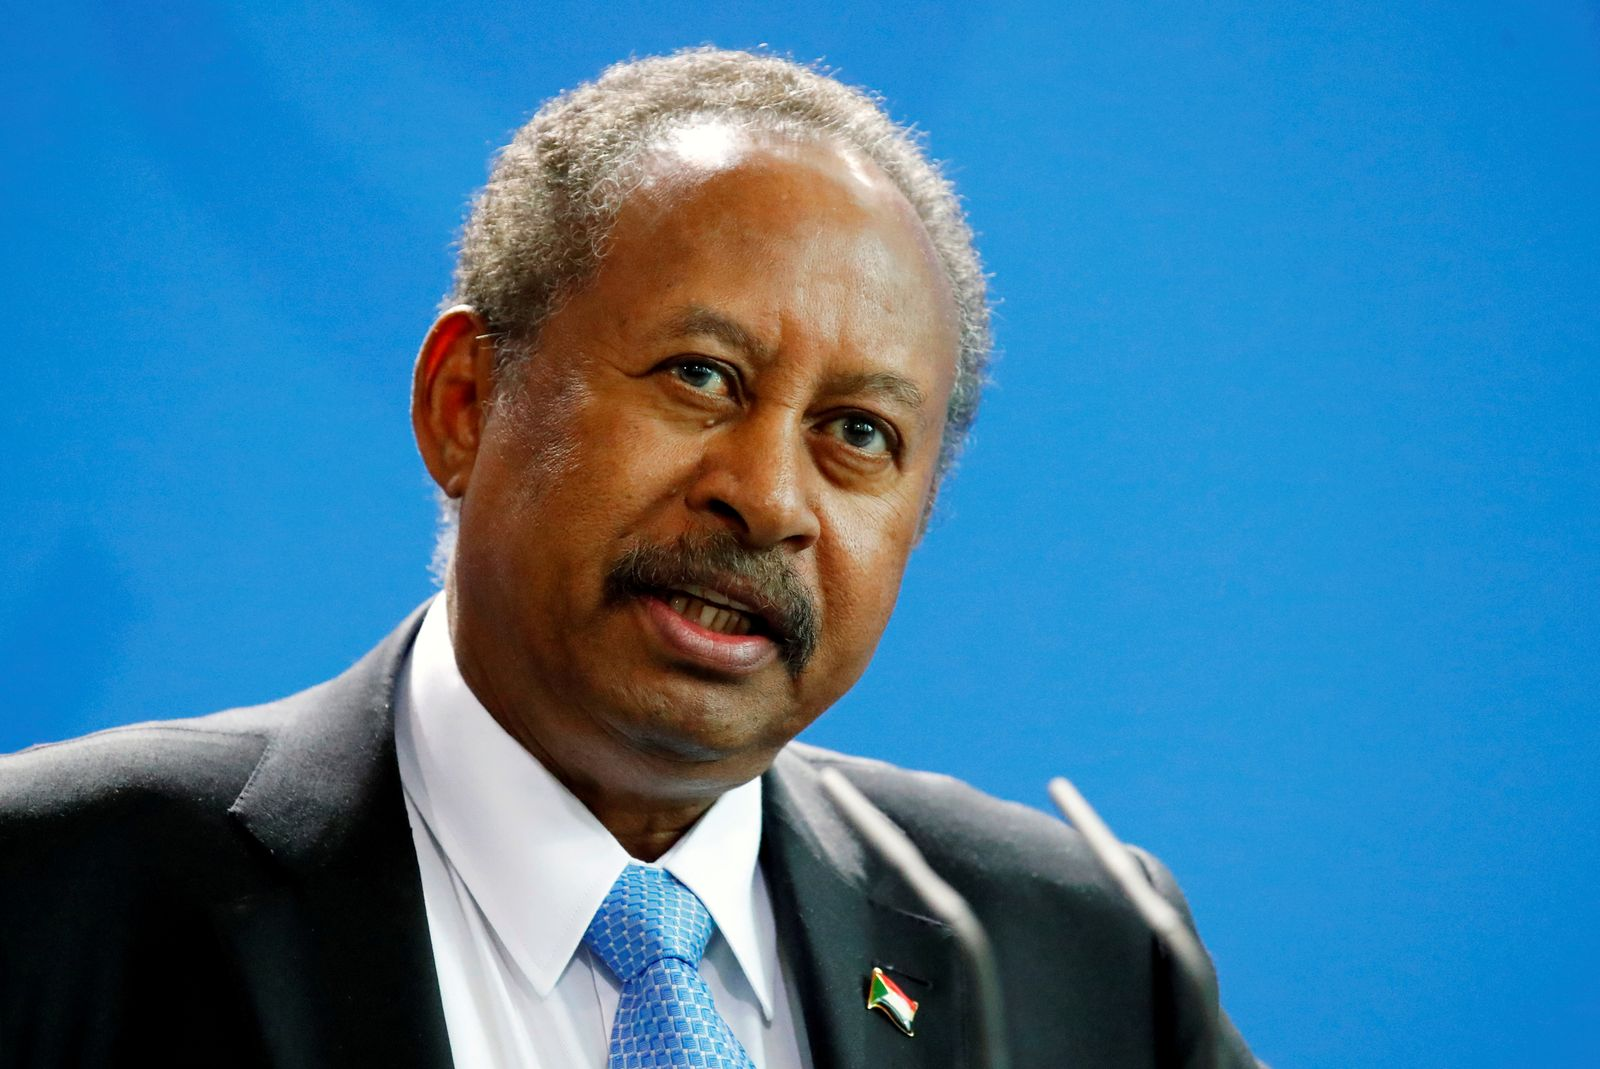 FILE PHOTO: Sudanese Prime Minister Abdalla Hamdok speaks at a news conference during a visit to Berlin, Germany